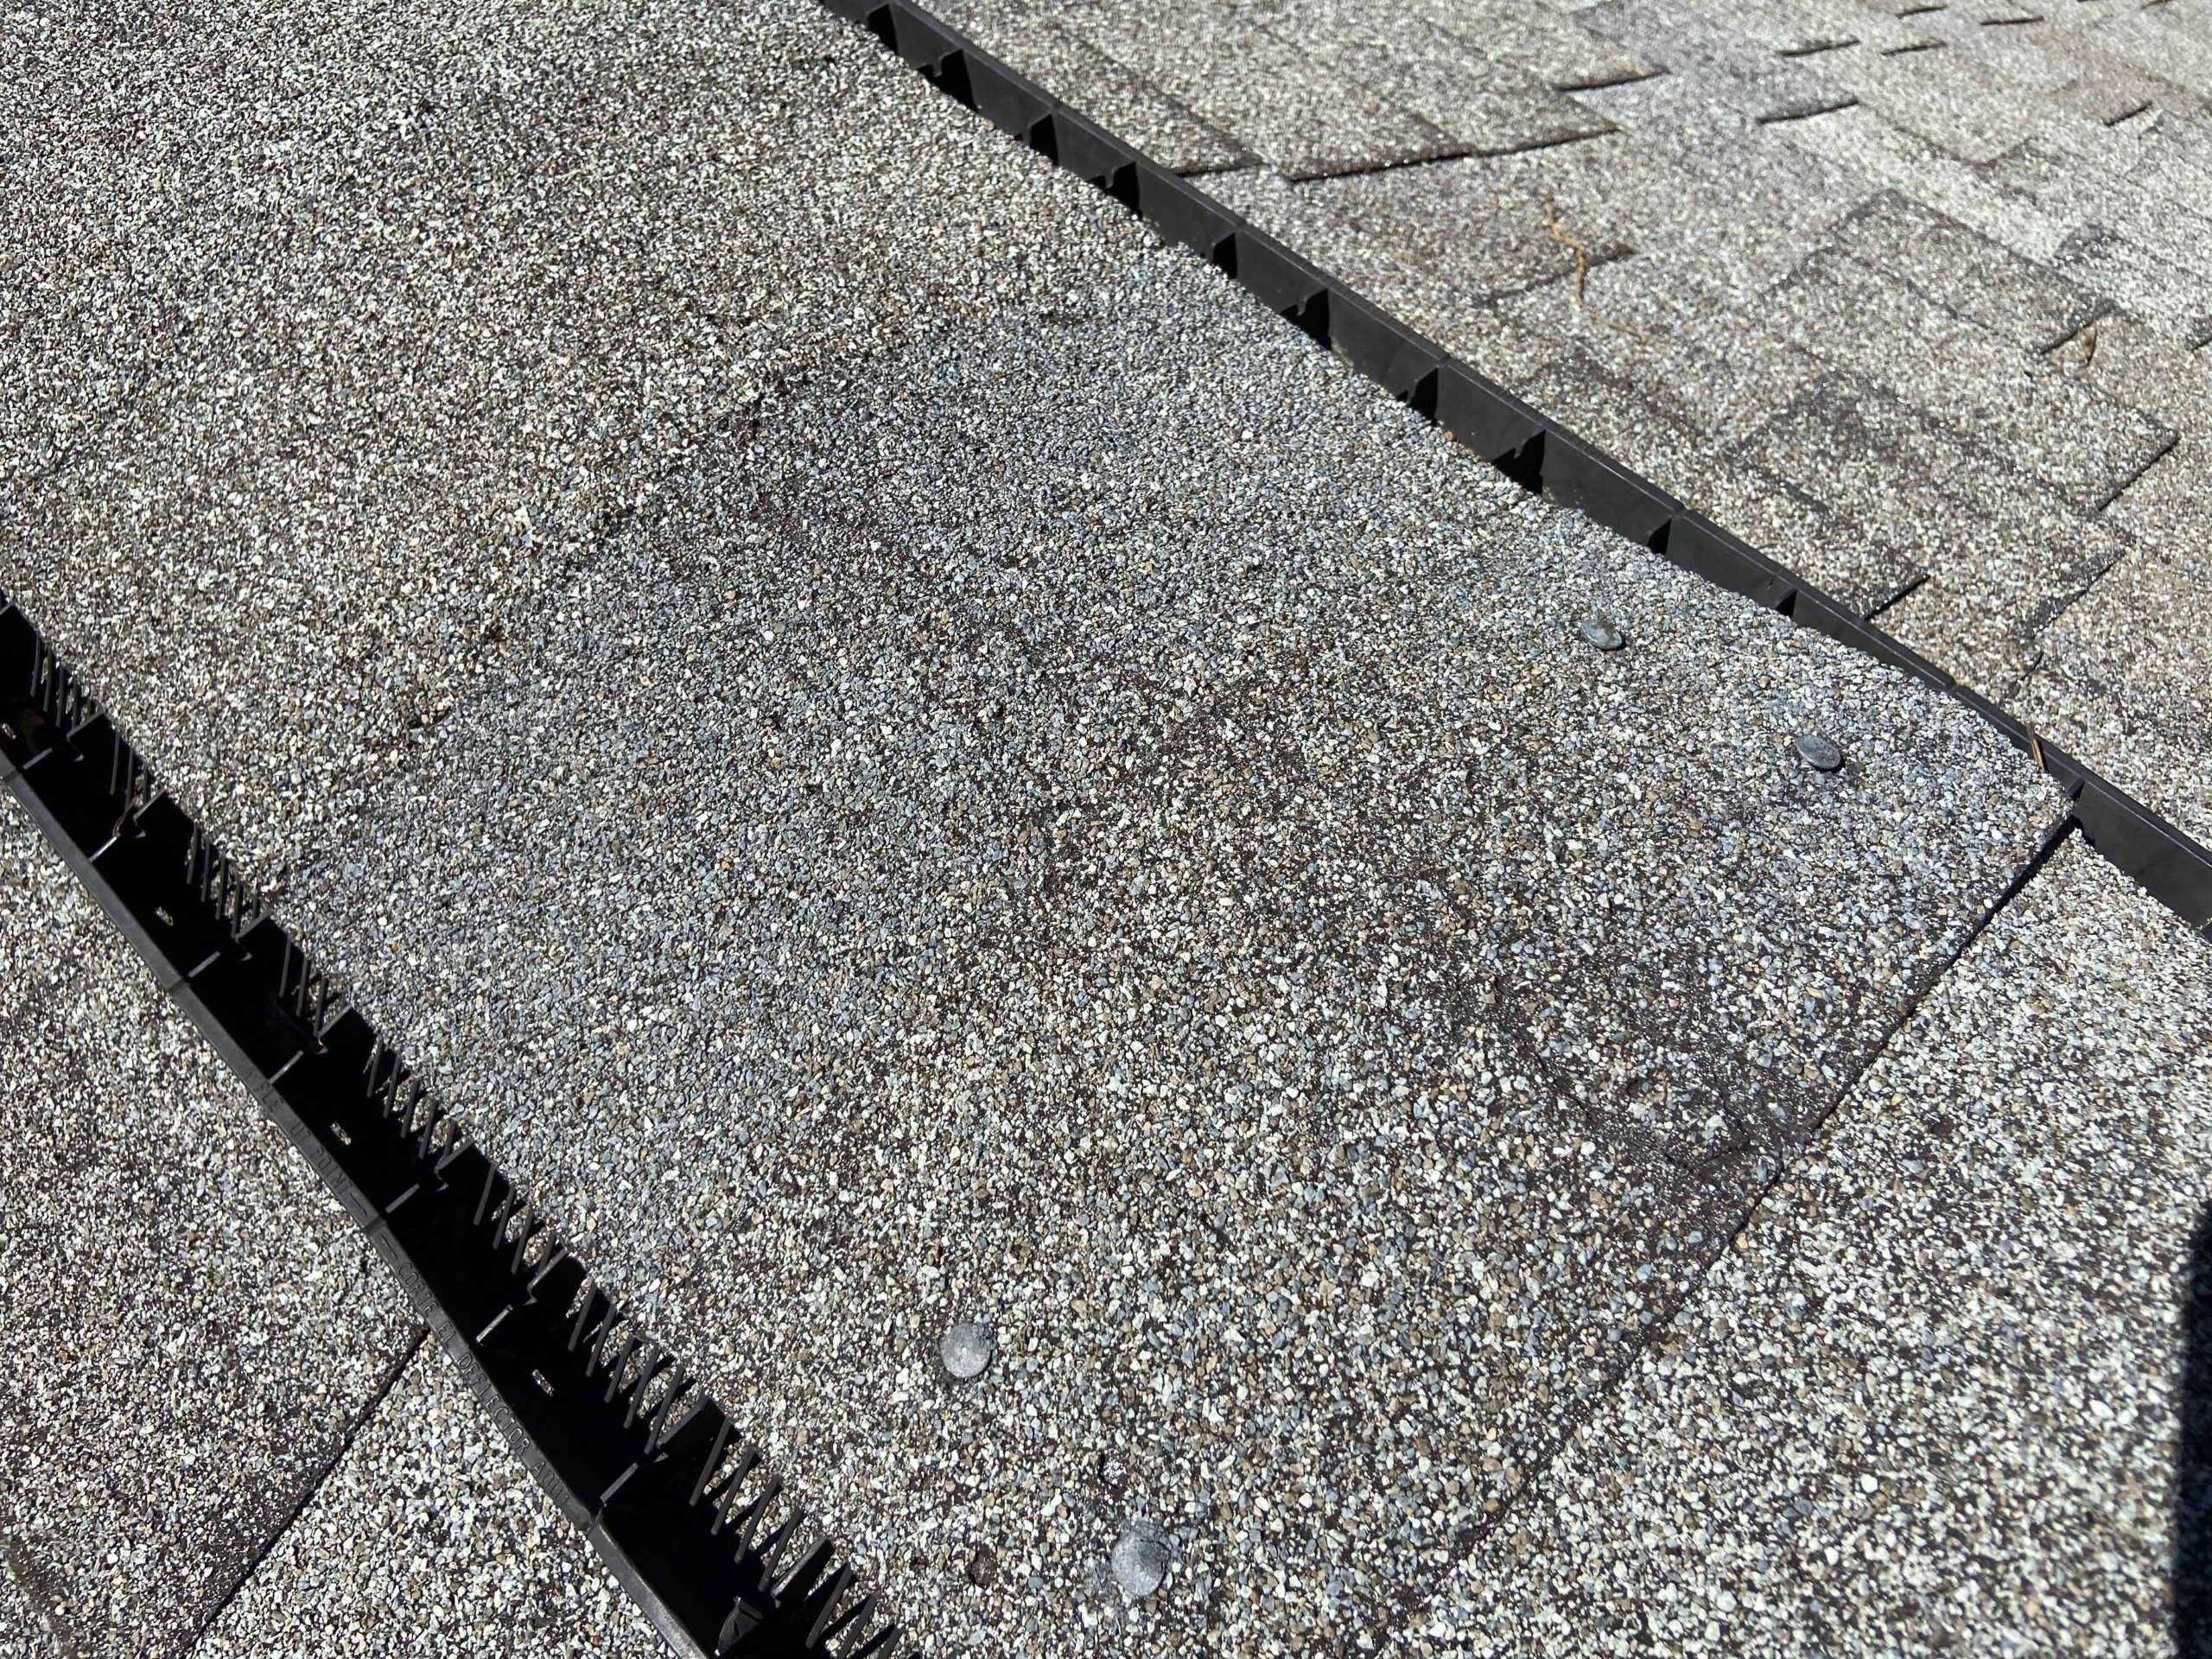 This is an image of ridge cap shingles that are starting to crack.